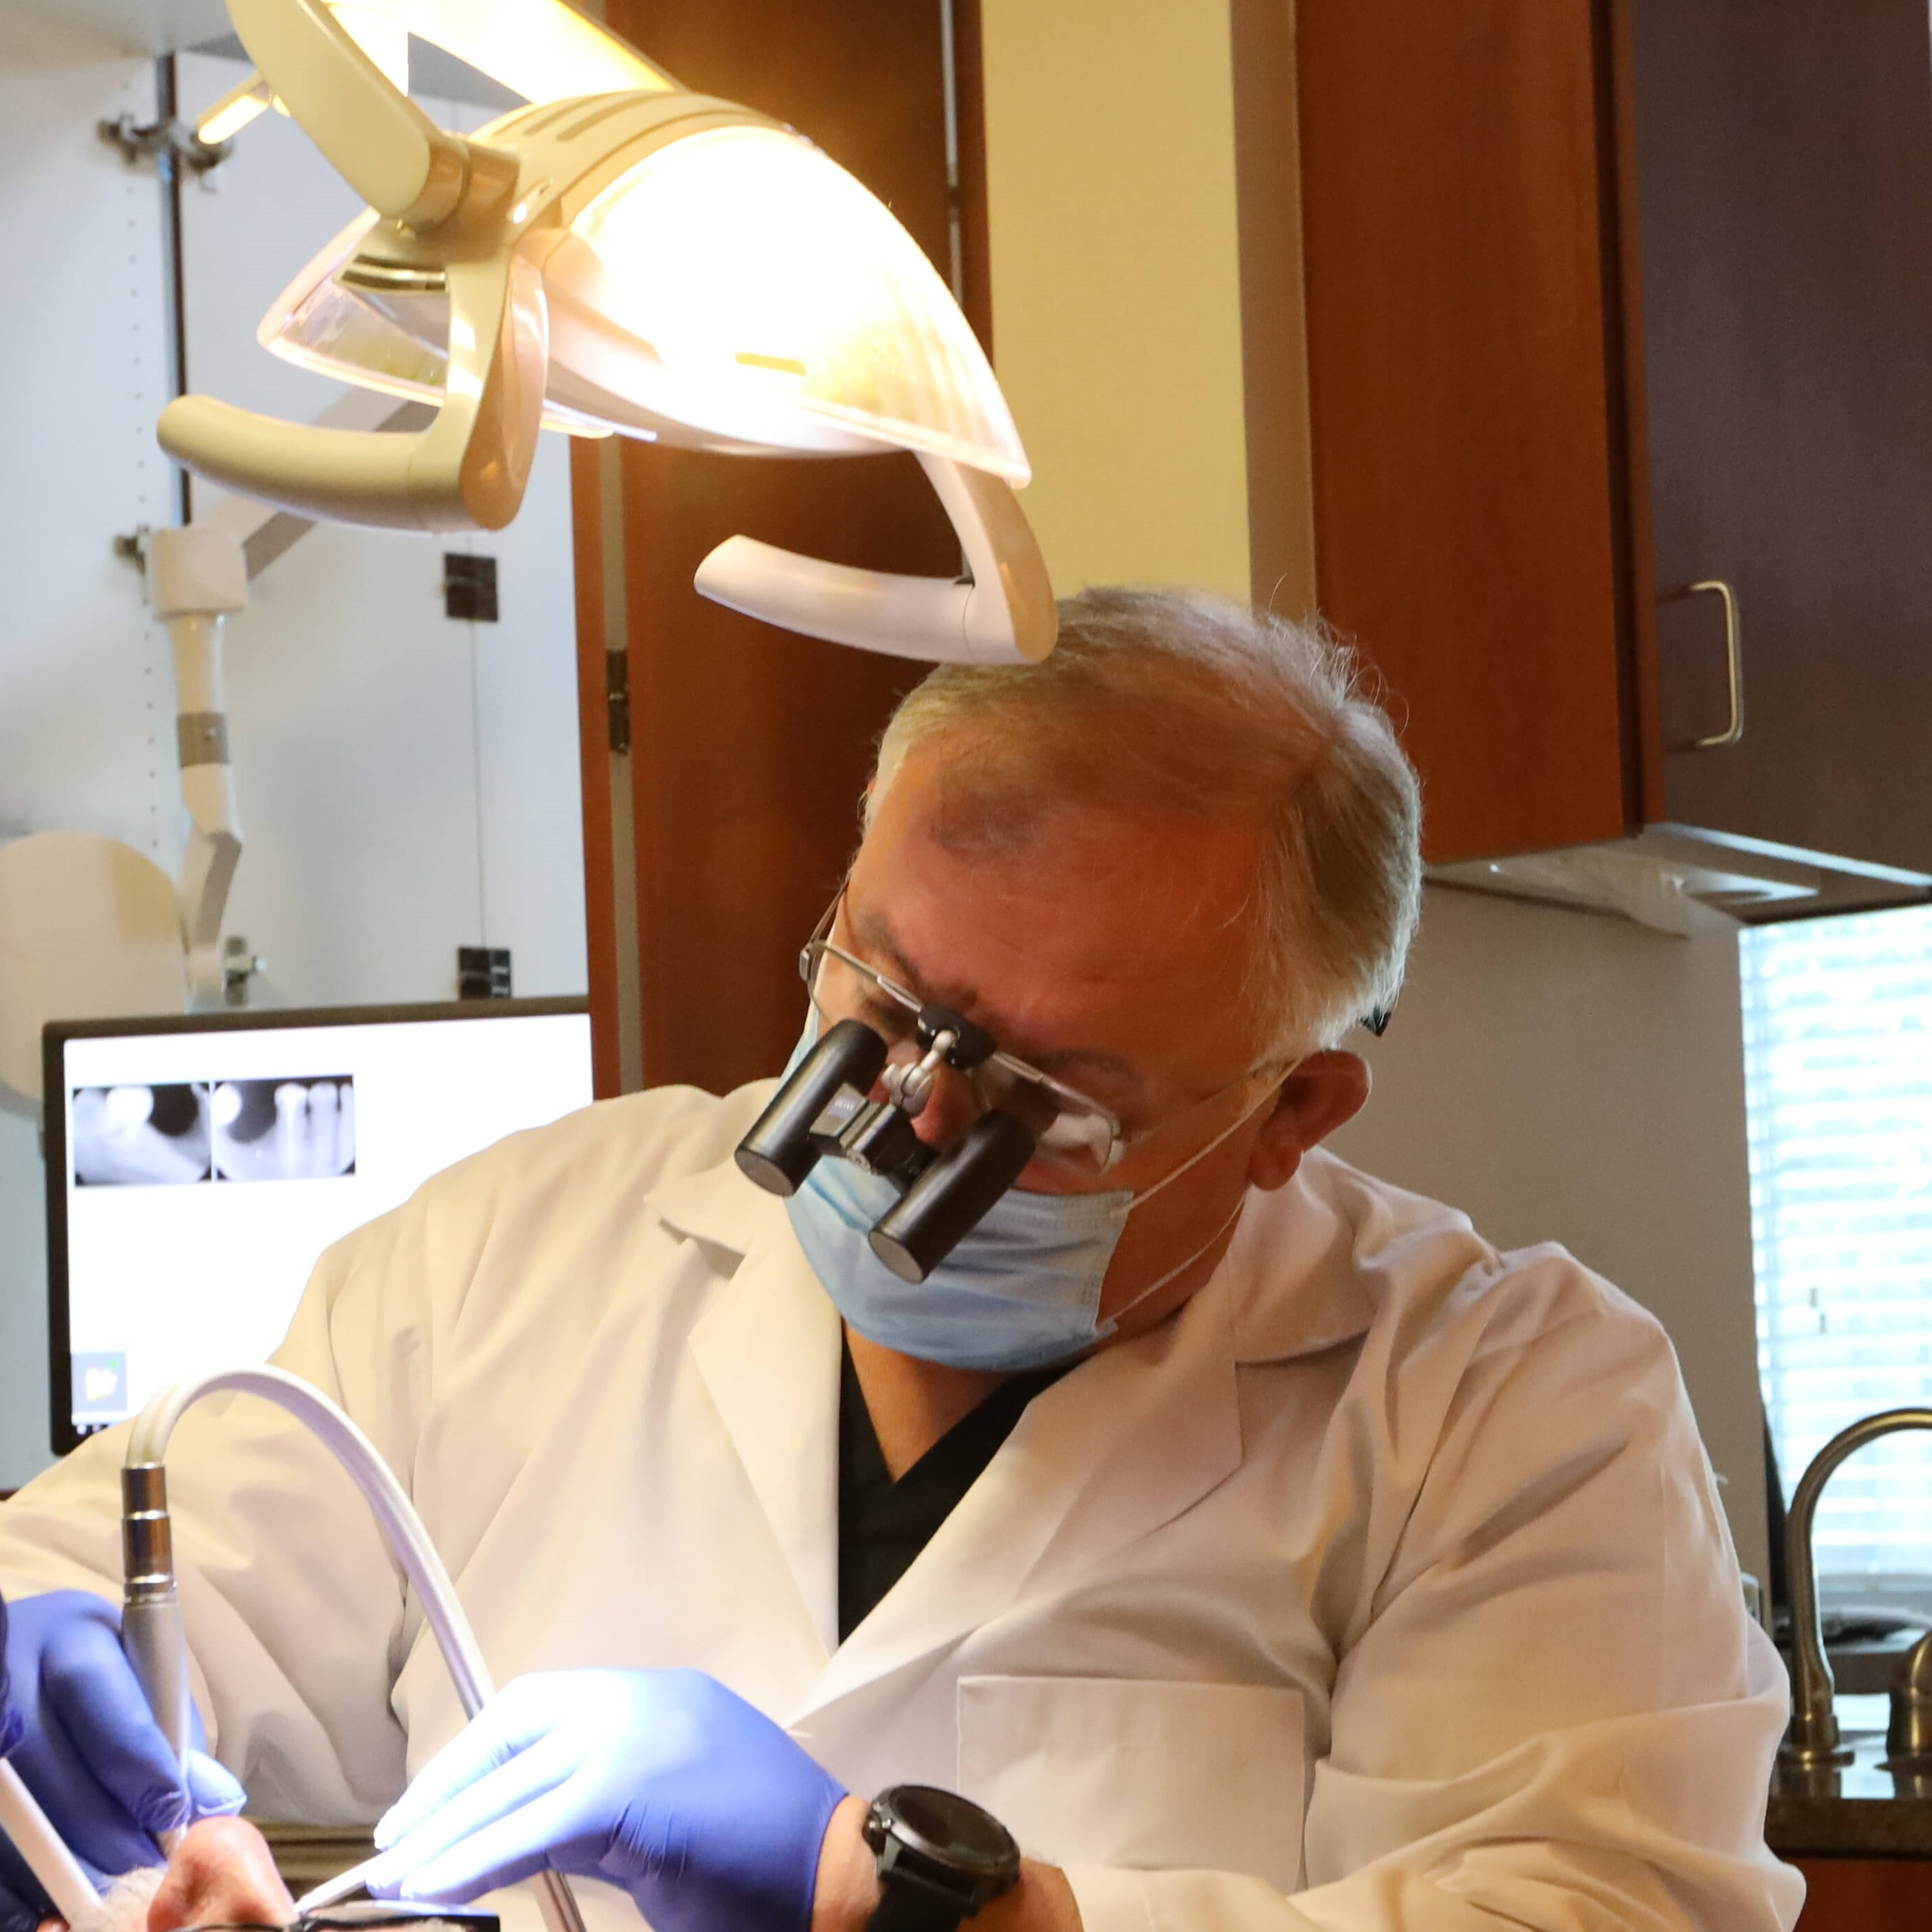 Dr. Lubomir Manov Working On Patient